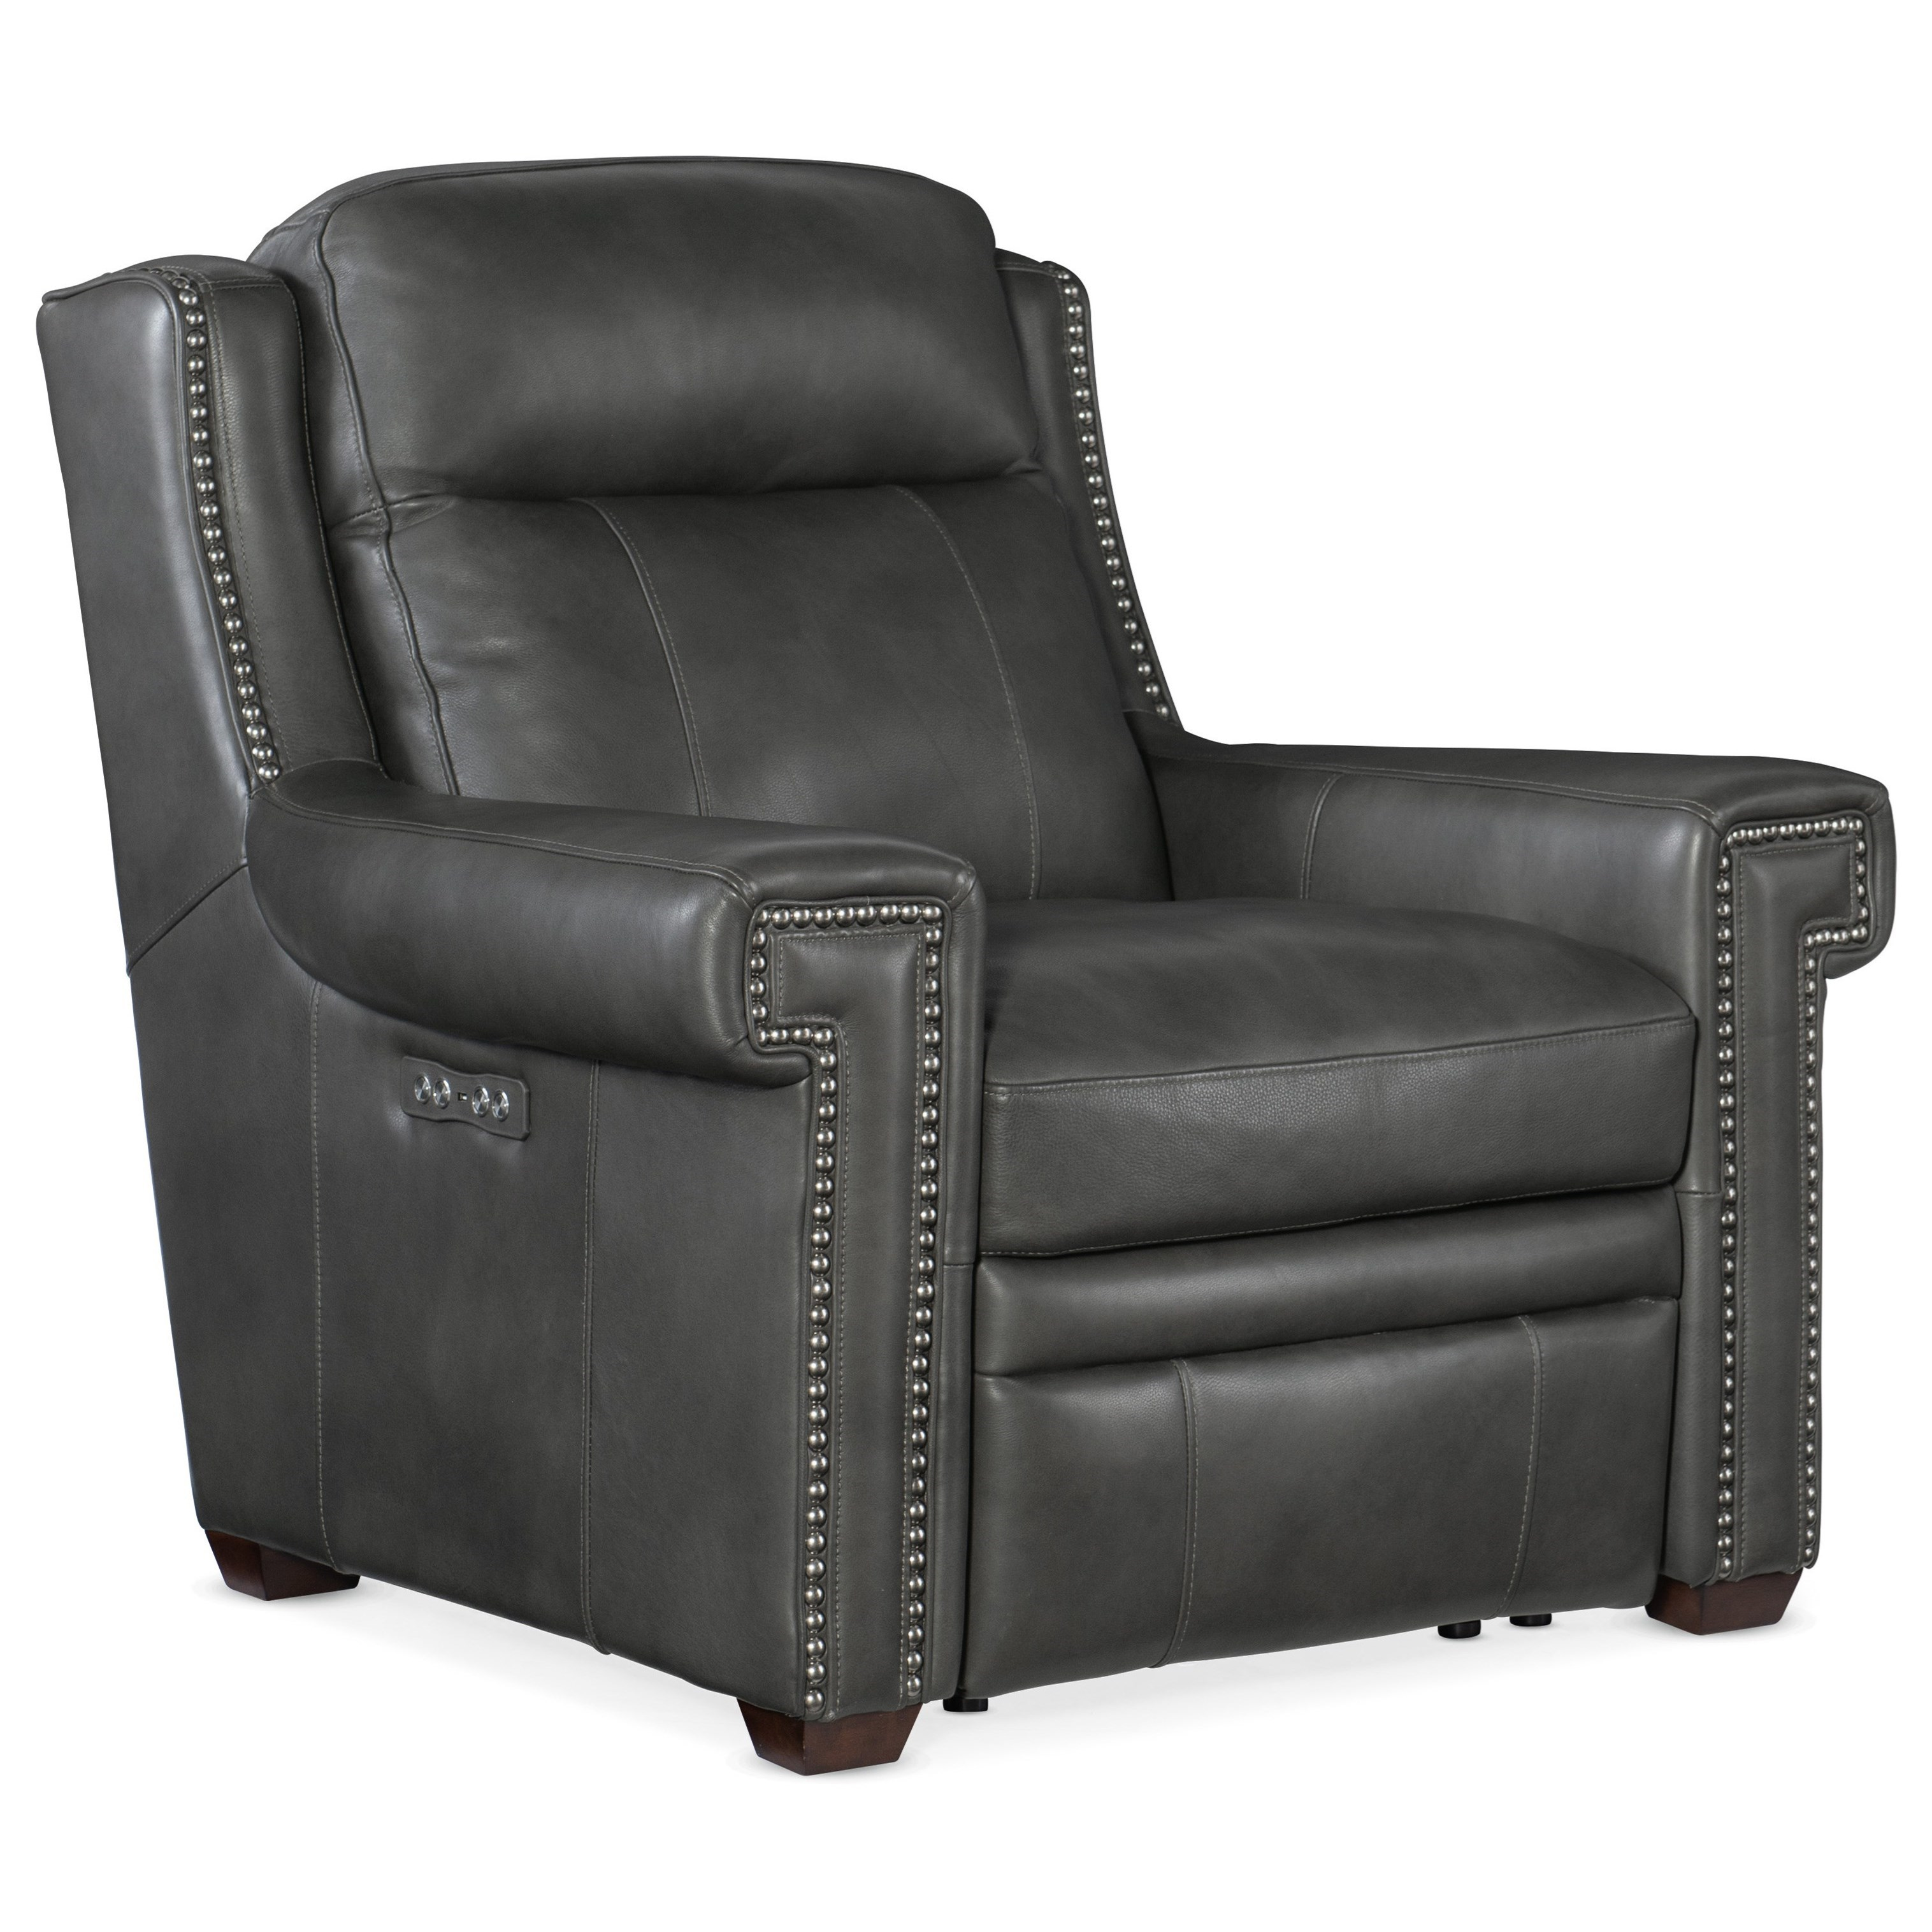 Mulberry Power Recliner w/ Power Headrest by Hooker Furniture at Baer's Furniture